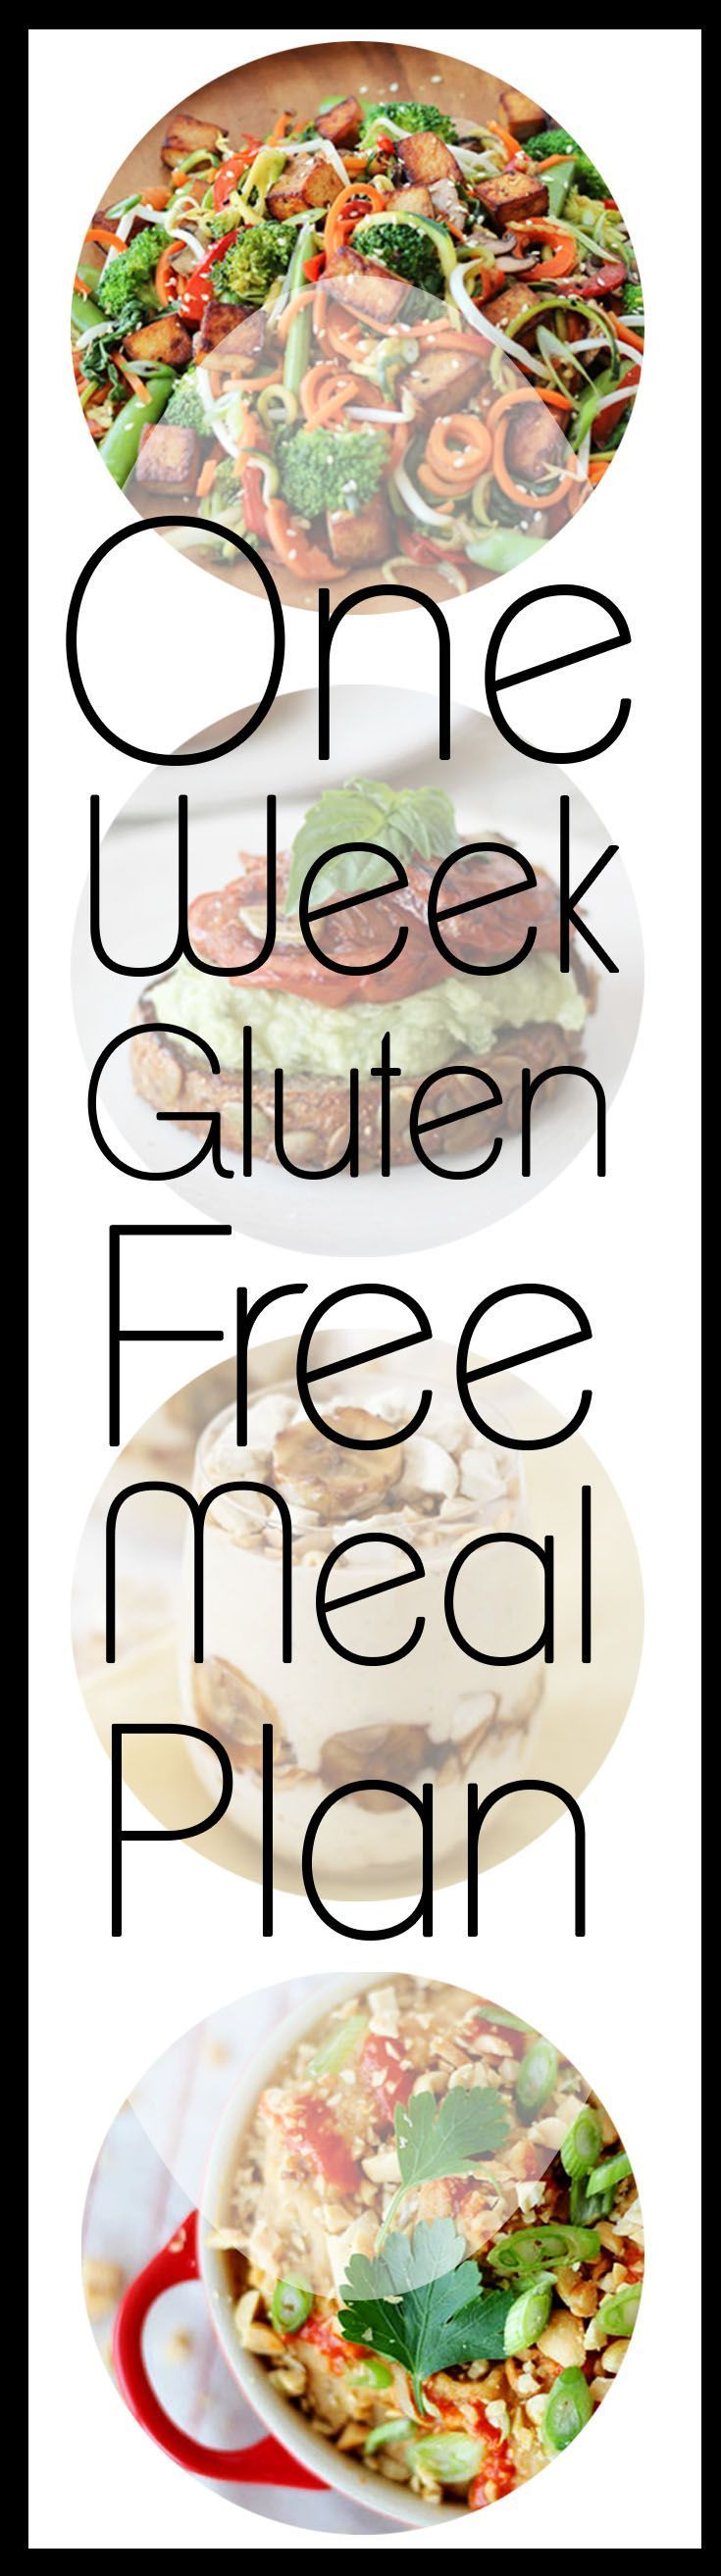 1 Week Gluten Free Meal Plan to Meet Your Health Goals with the top recipes that don't require expensive specialty gluten free ingredients.